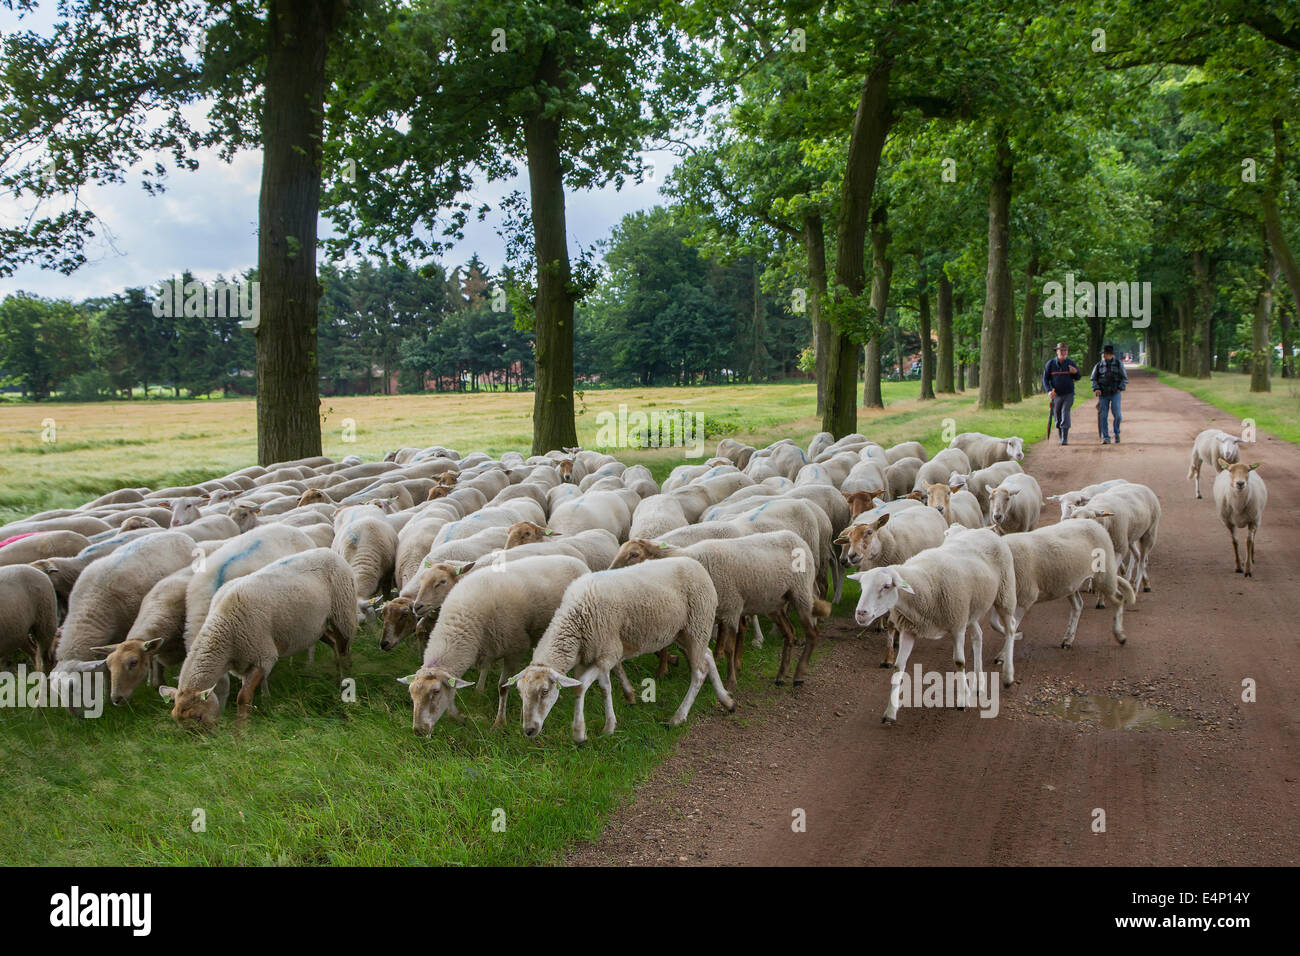 Two shepherds herding flock of white sheep along lane bordered with trees - Stock Image